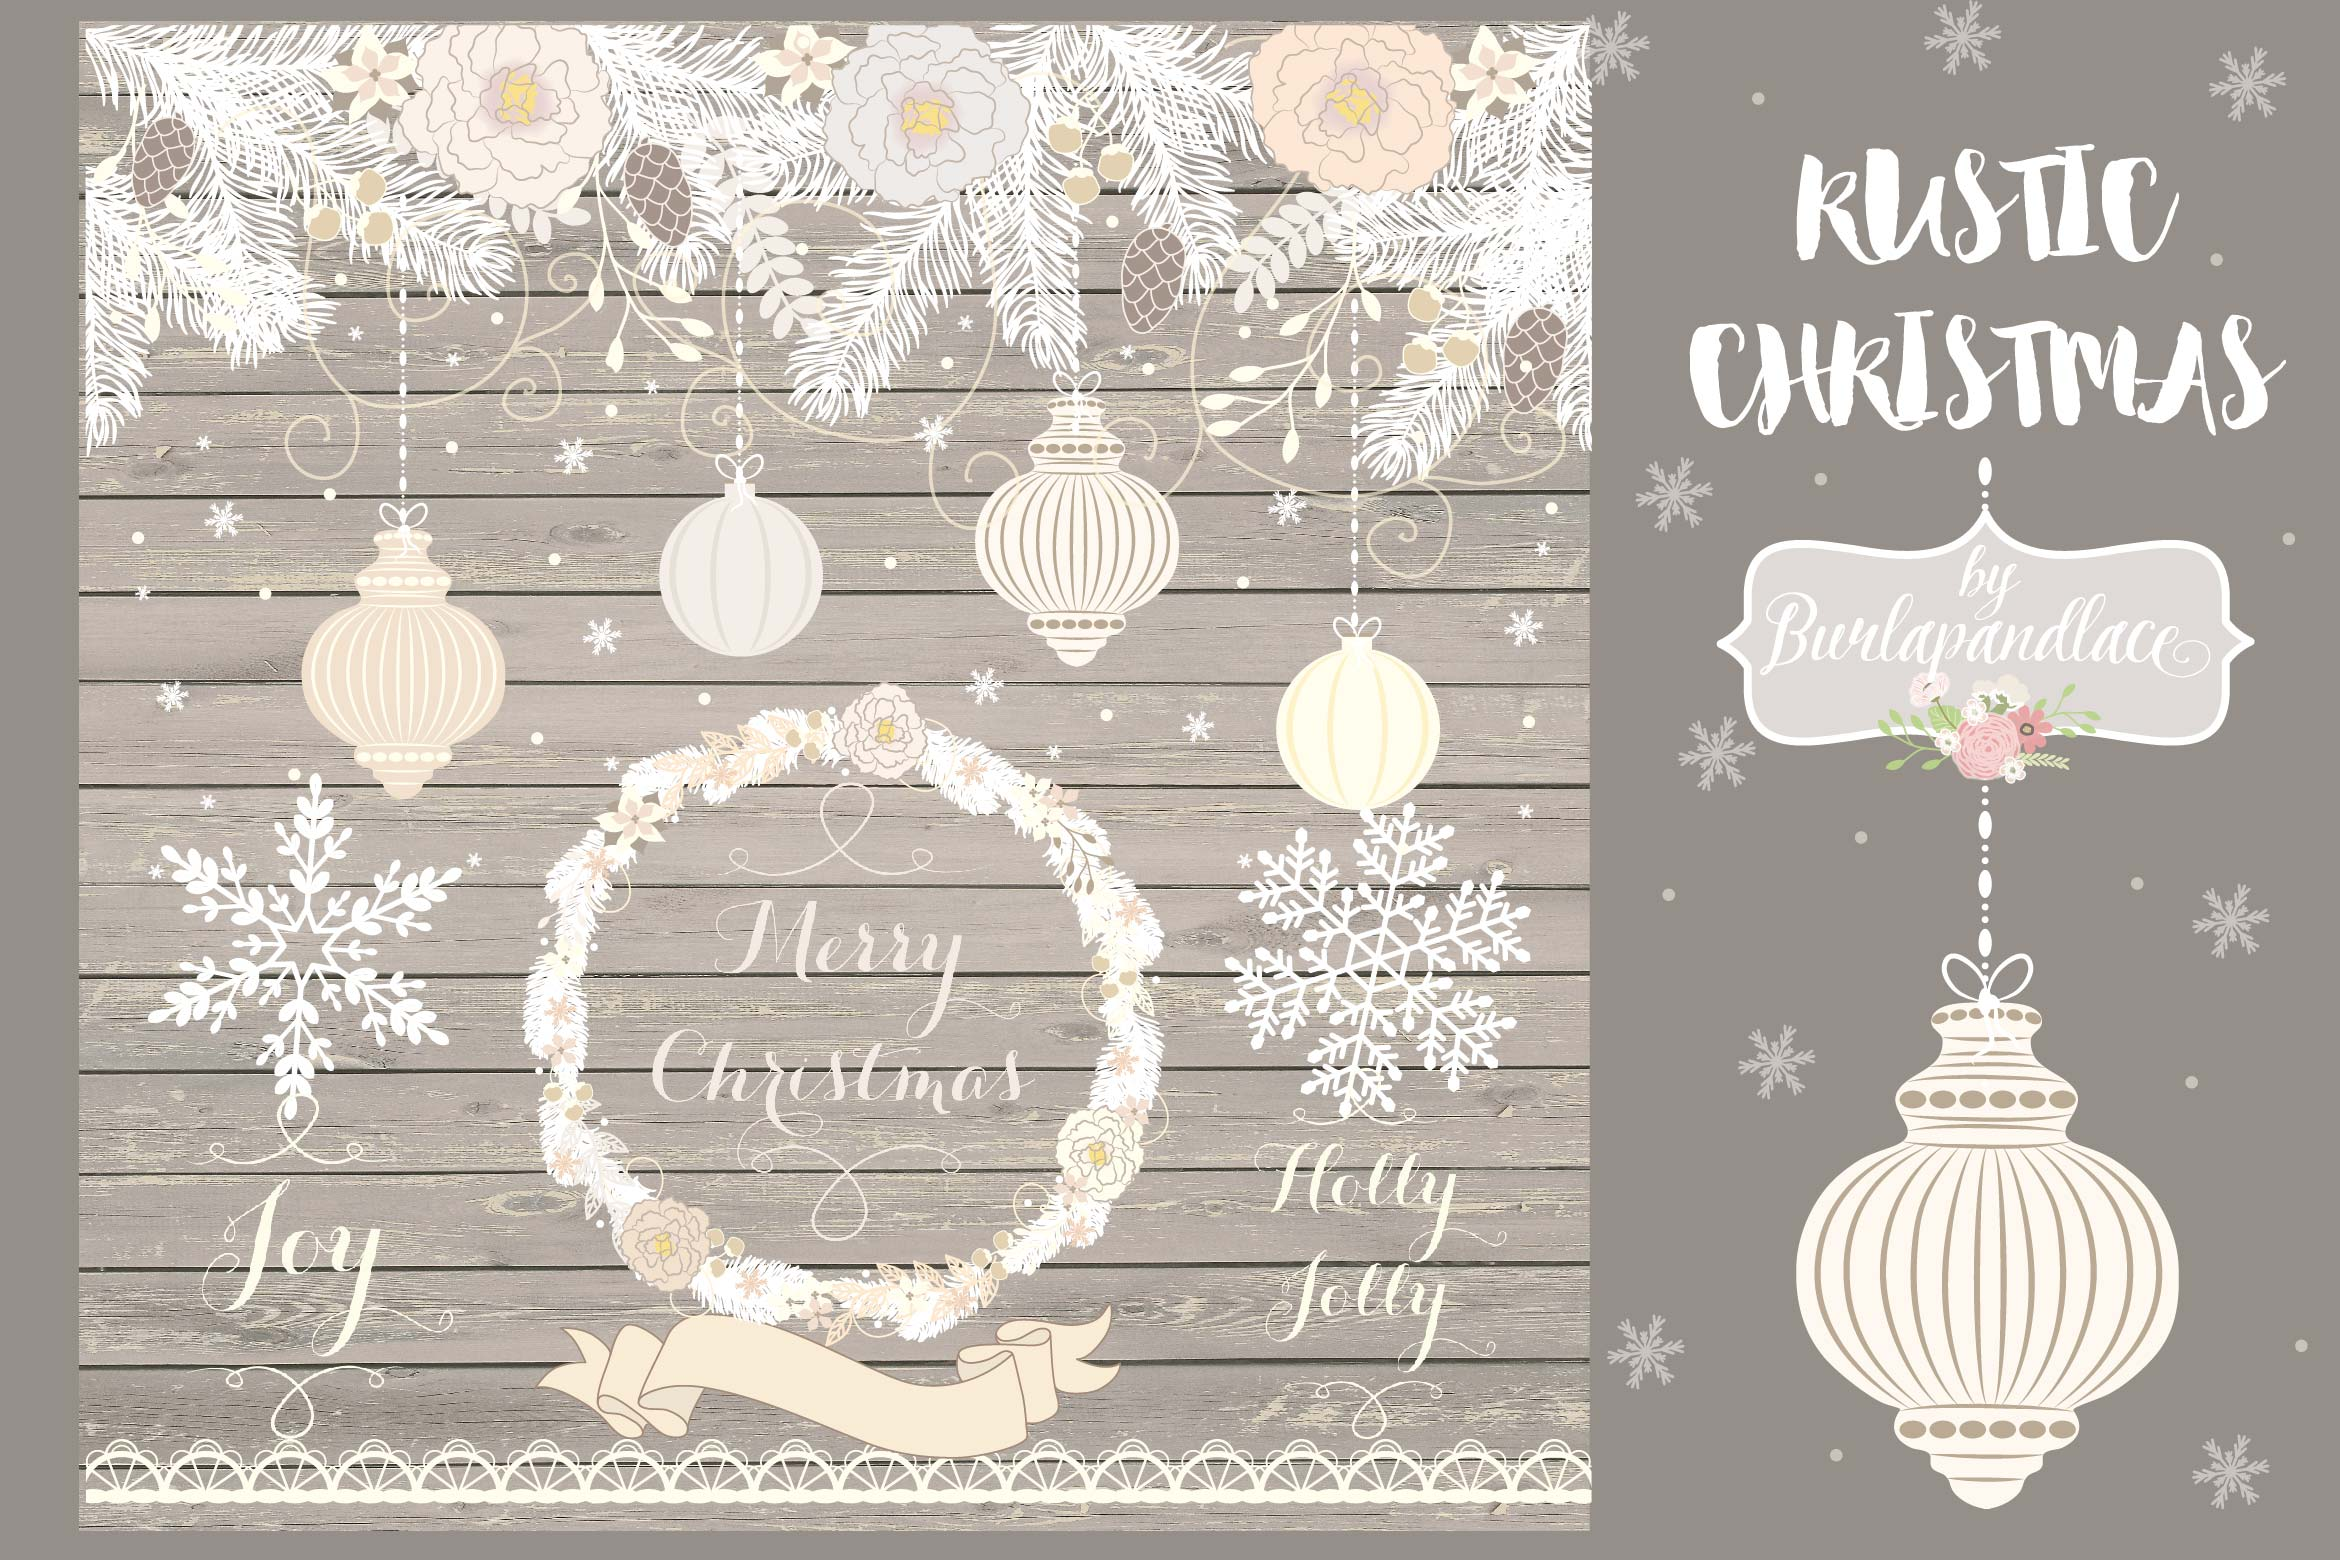 Vintage rustic floral christmas design example image 1